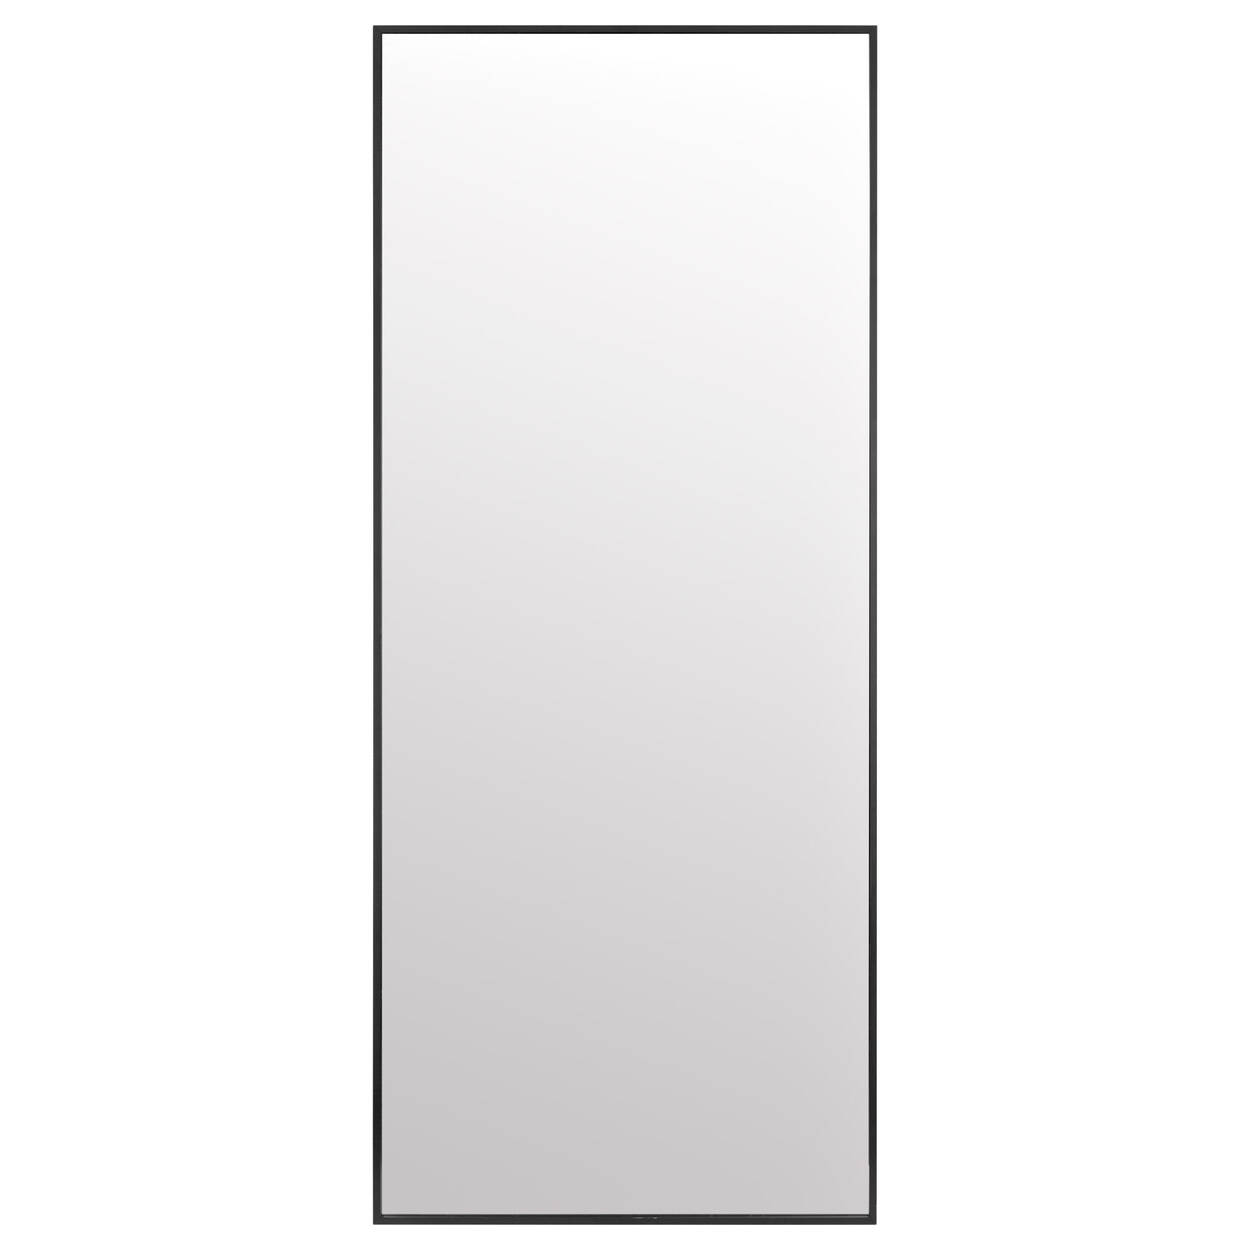 Full-Length Aluminum-Framed Mirror